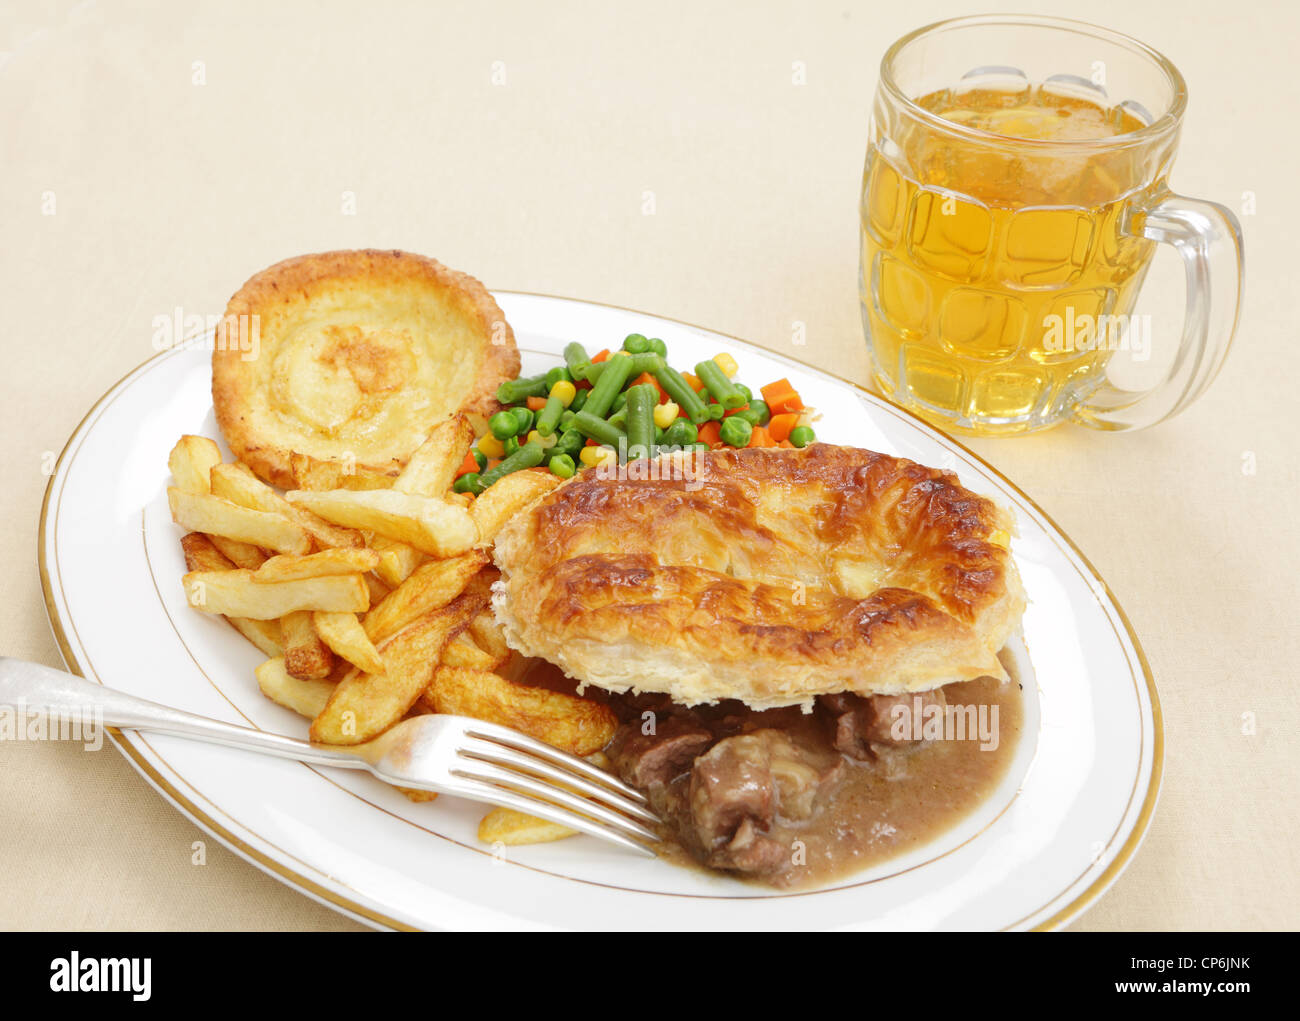 A  homemade steak and kidney pie with french fries yorkshire pudding and mixed vegetables served with a pint of - Stock Image